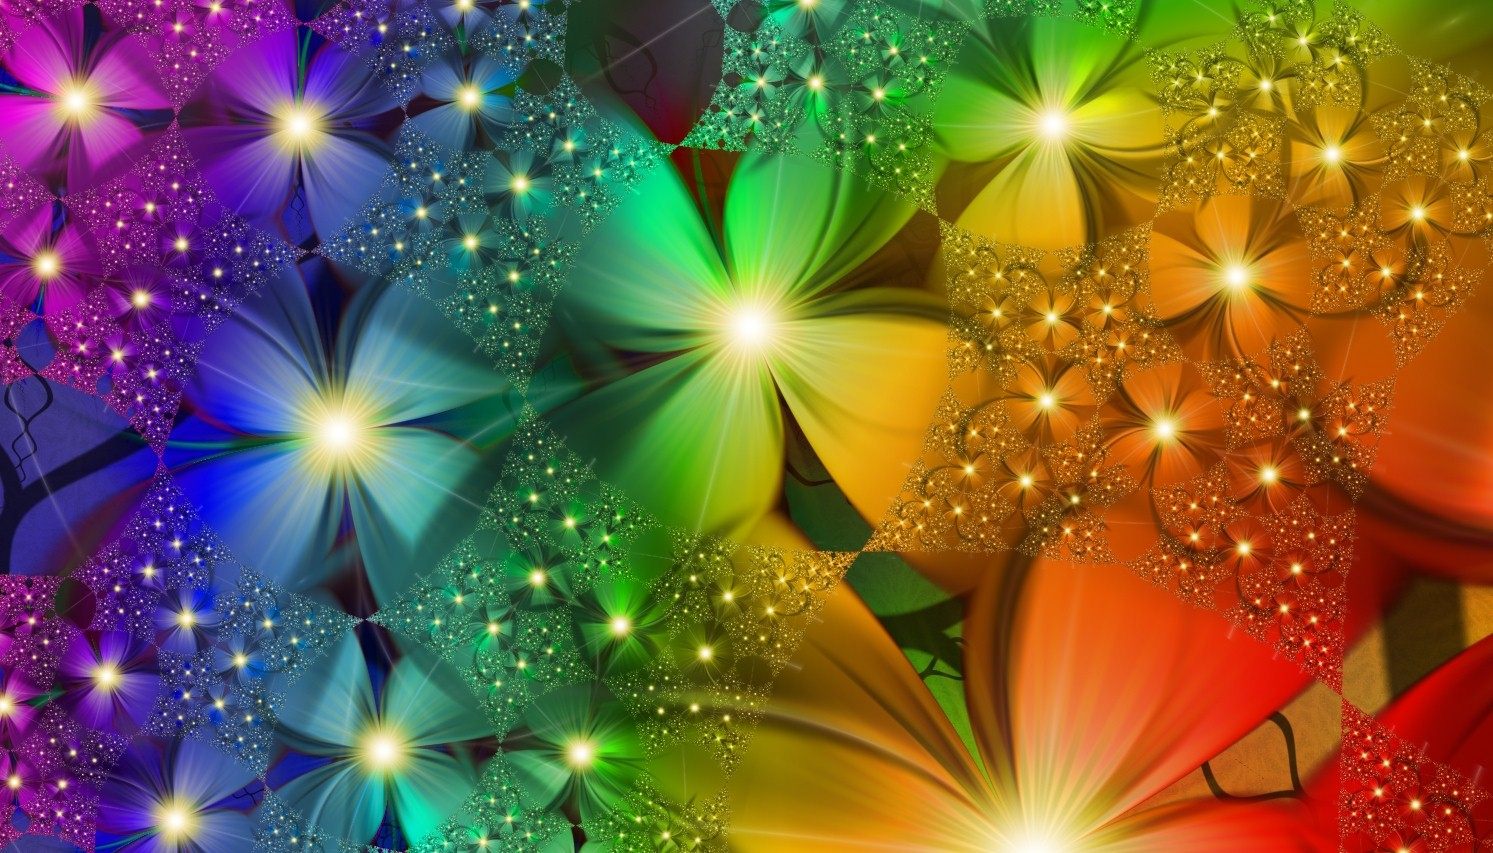 rainbow flowers image